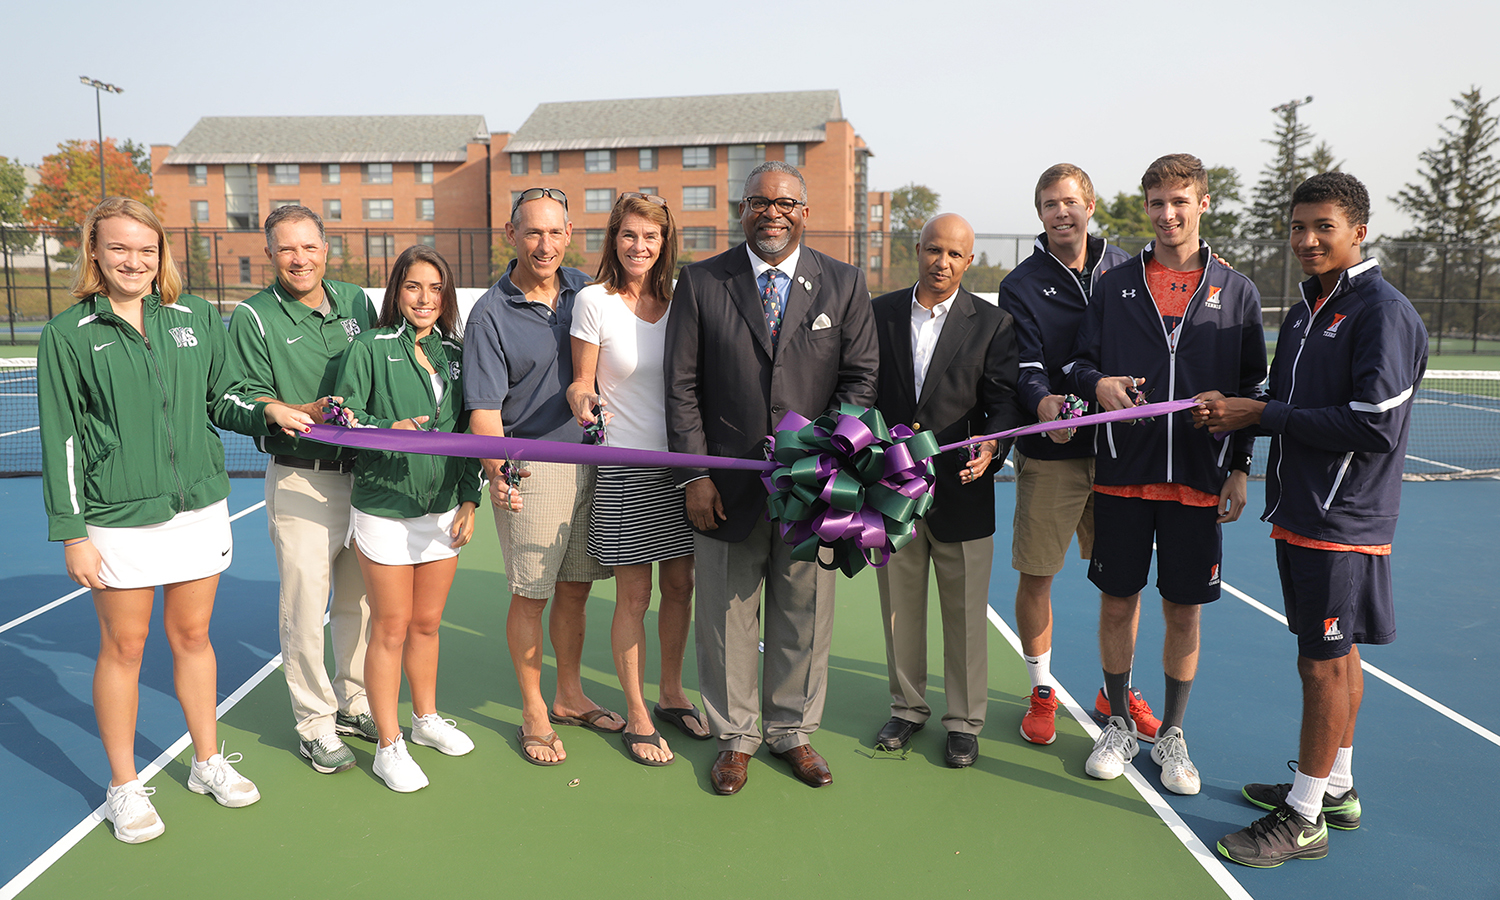 Members of the Hobart and William Smith tennis teams and their coaches join with Mark '86 and Karen Carpenter '88 Gray P'19, President Gregory J. Vincent '83 and James Atwater P'19 for an official ribbon cutting.